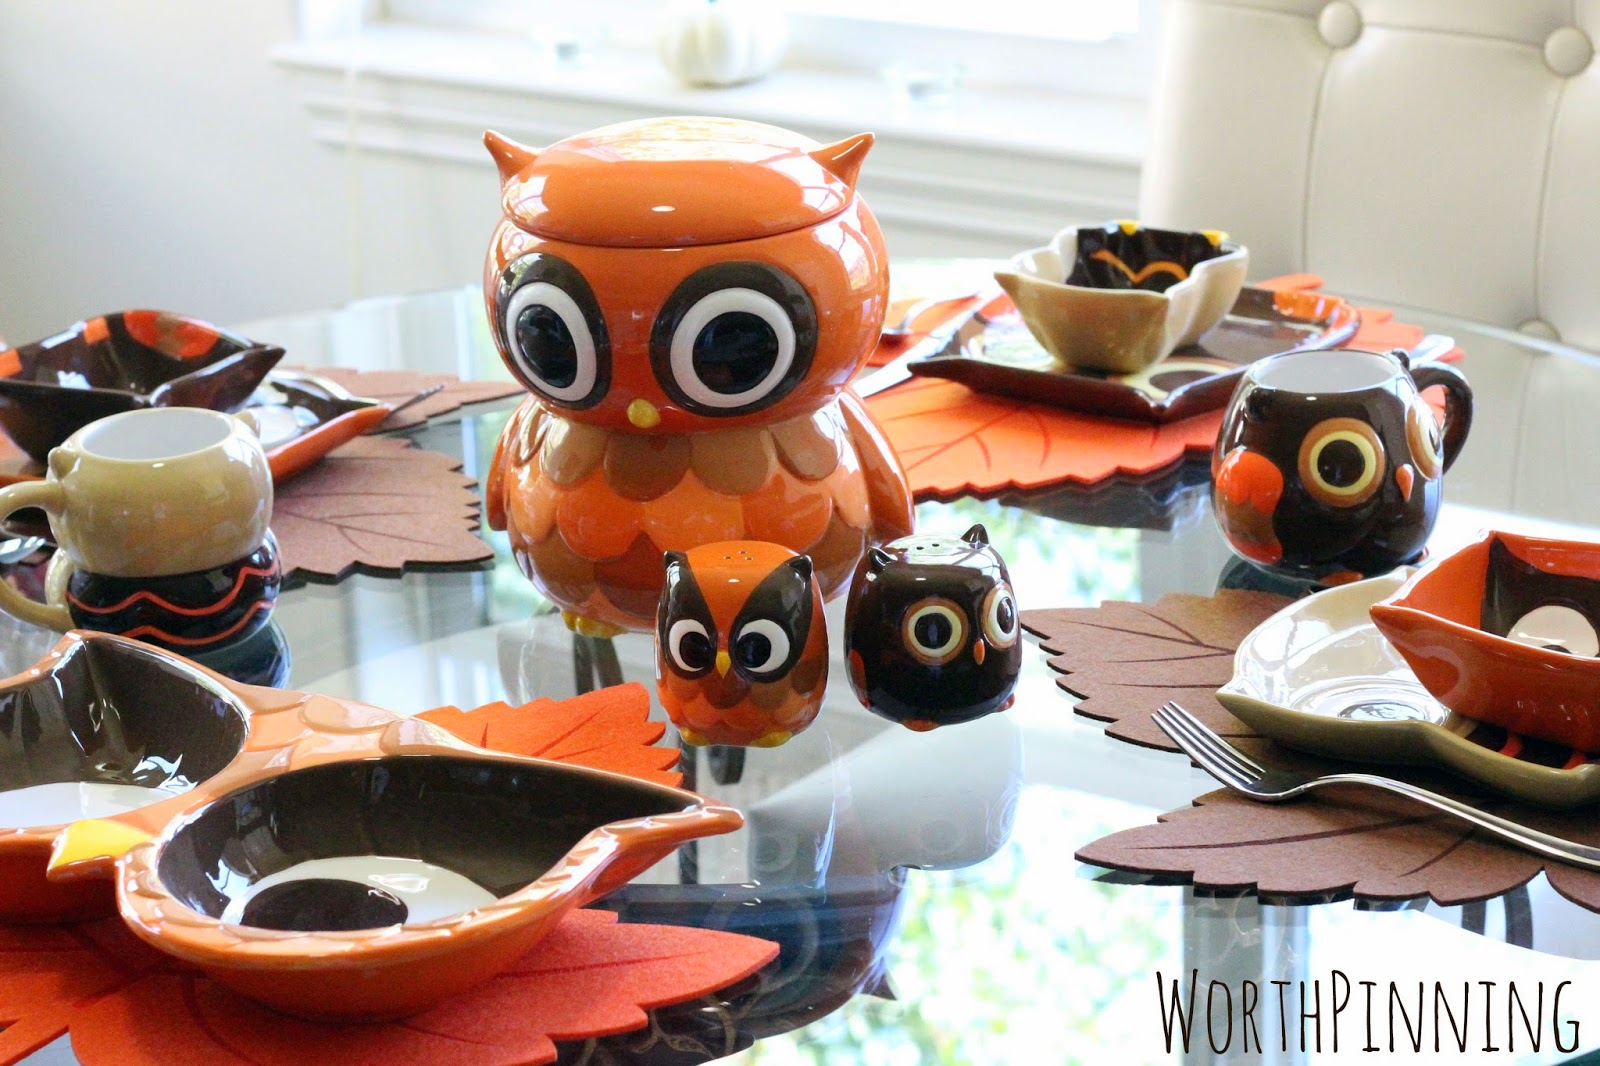 As long as we were getting the cookie jar the mugs were too cute to pass up. Then we saw the owl eyes double serving bowl. Yep we\u0027d need that too. & Worth Pinning: Fall Tablescape